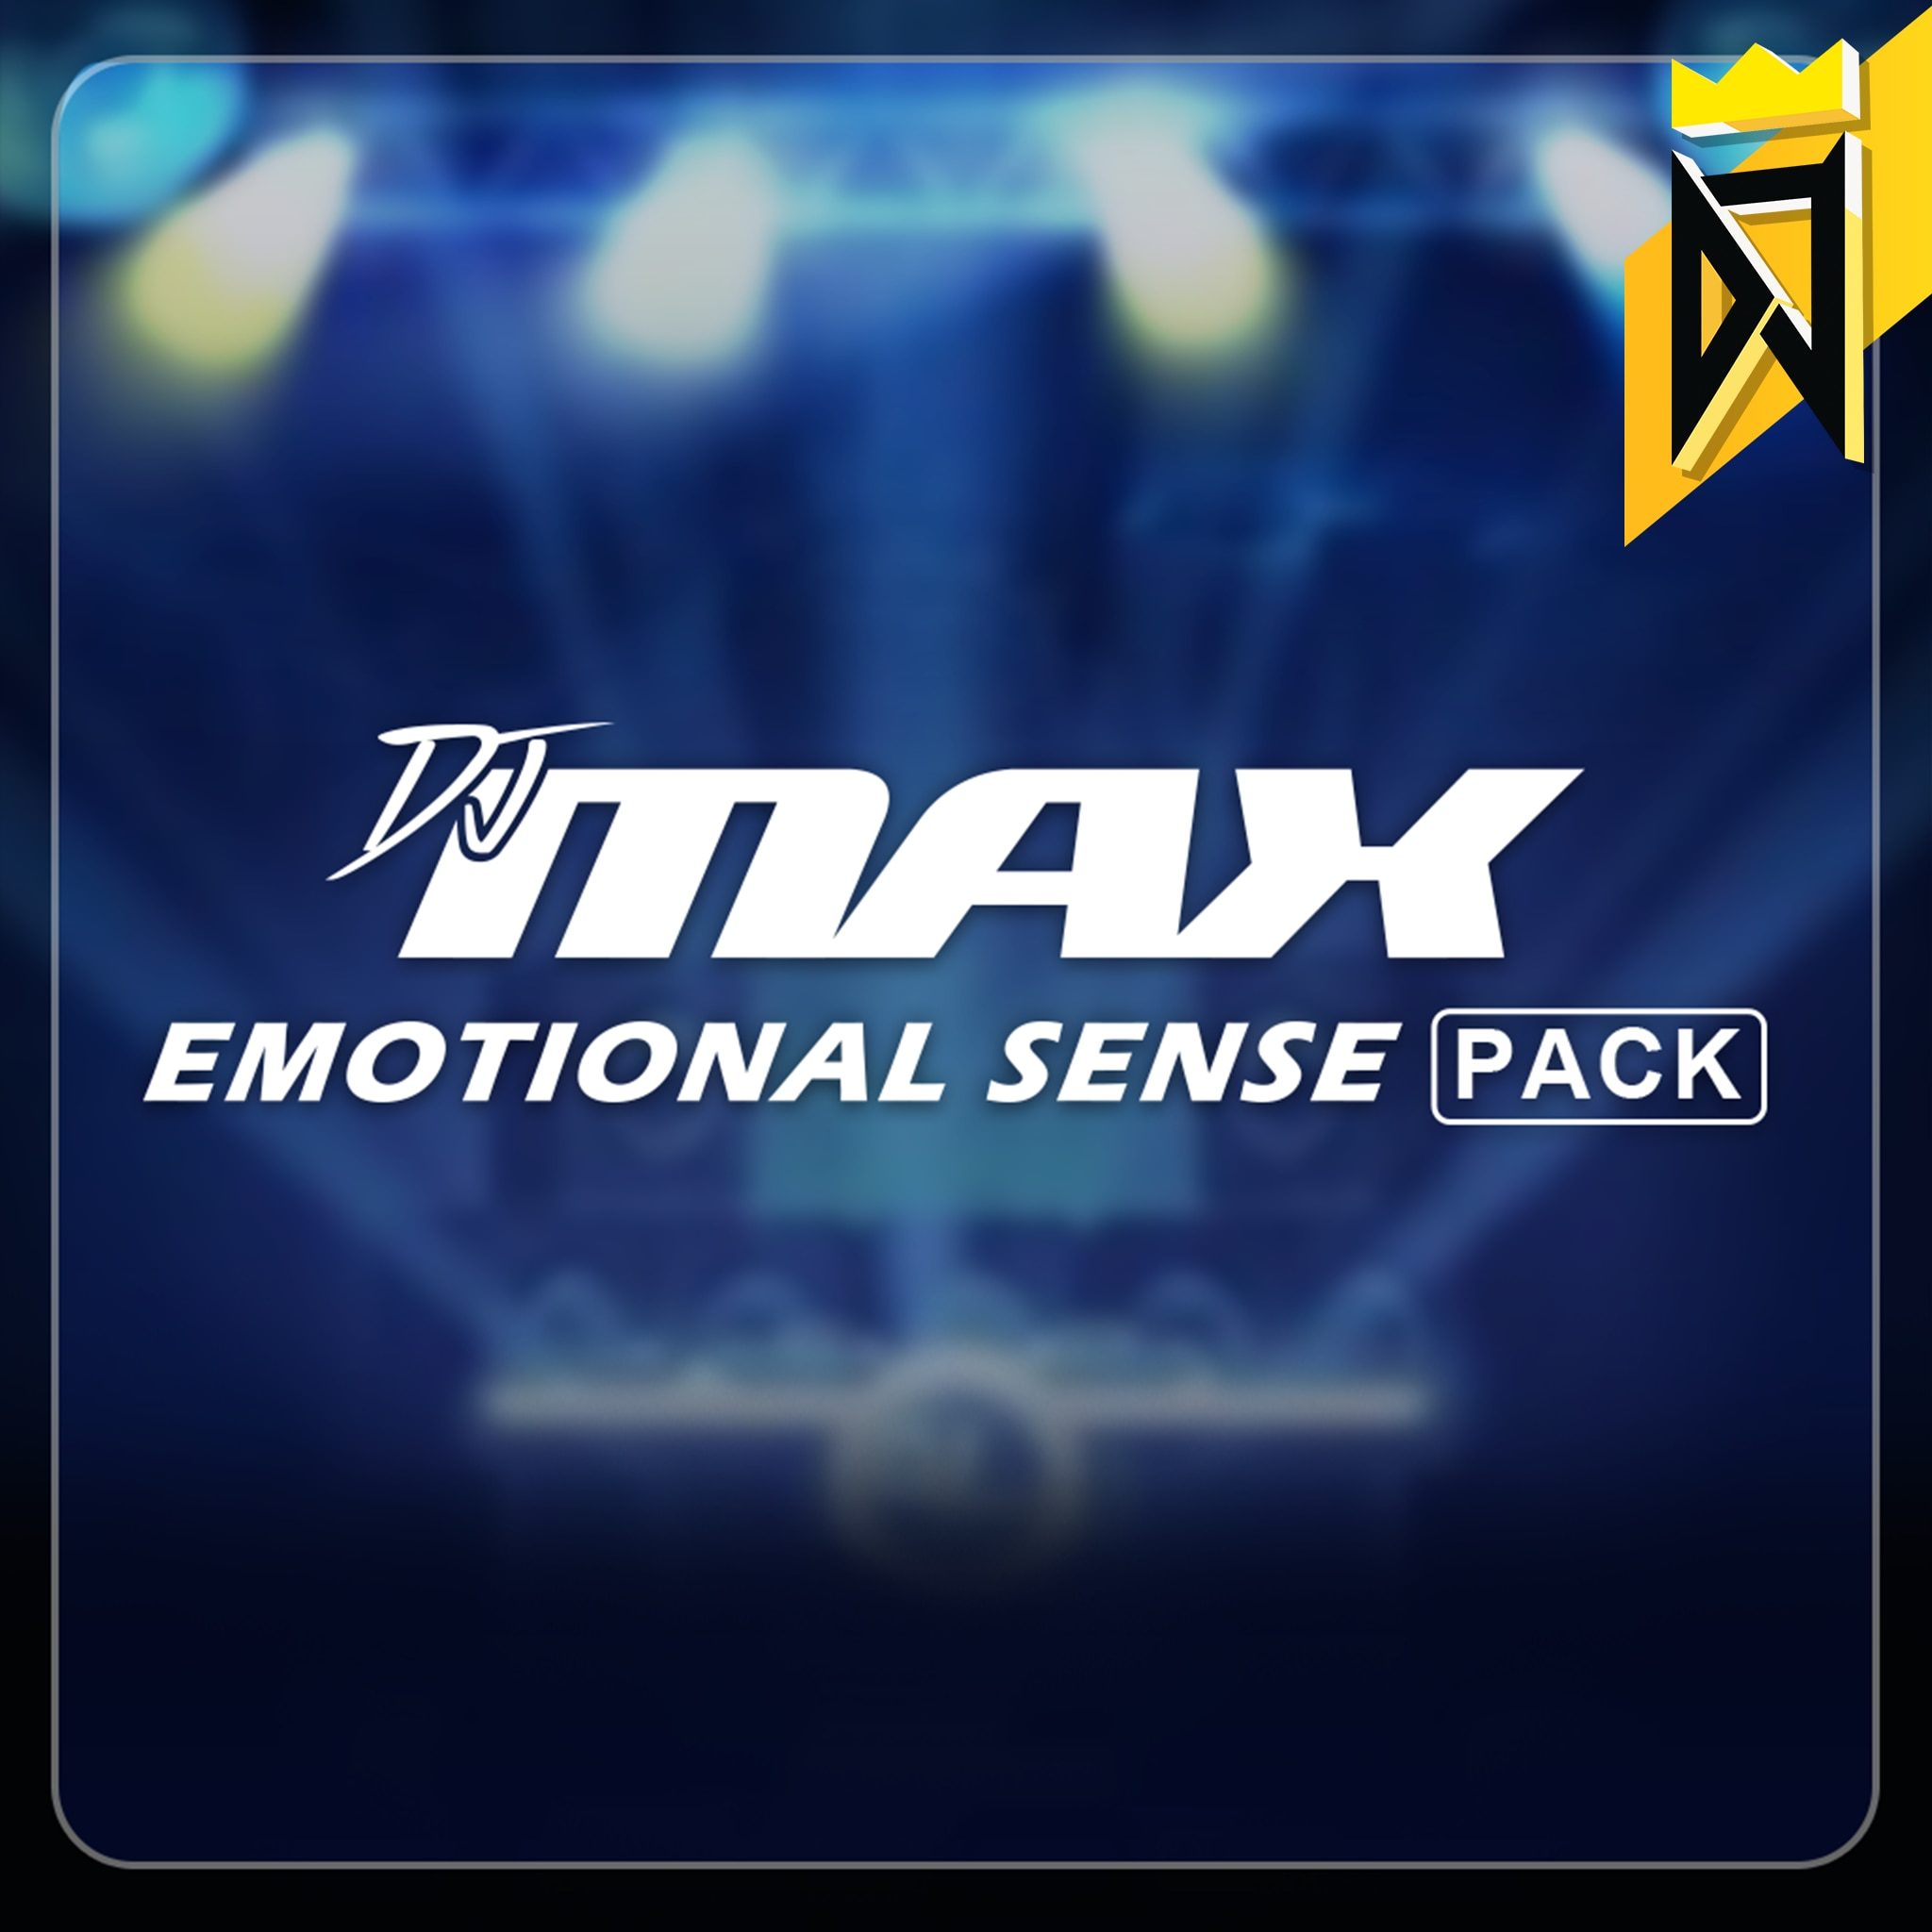 『DJMAX RESPECT』 EMOTIONAL SENSE PACK